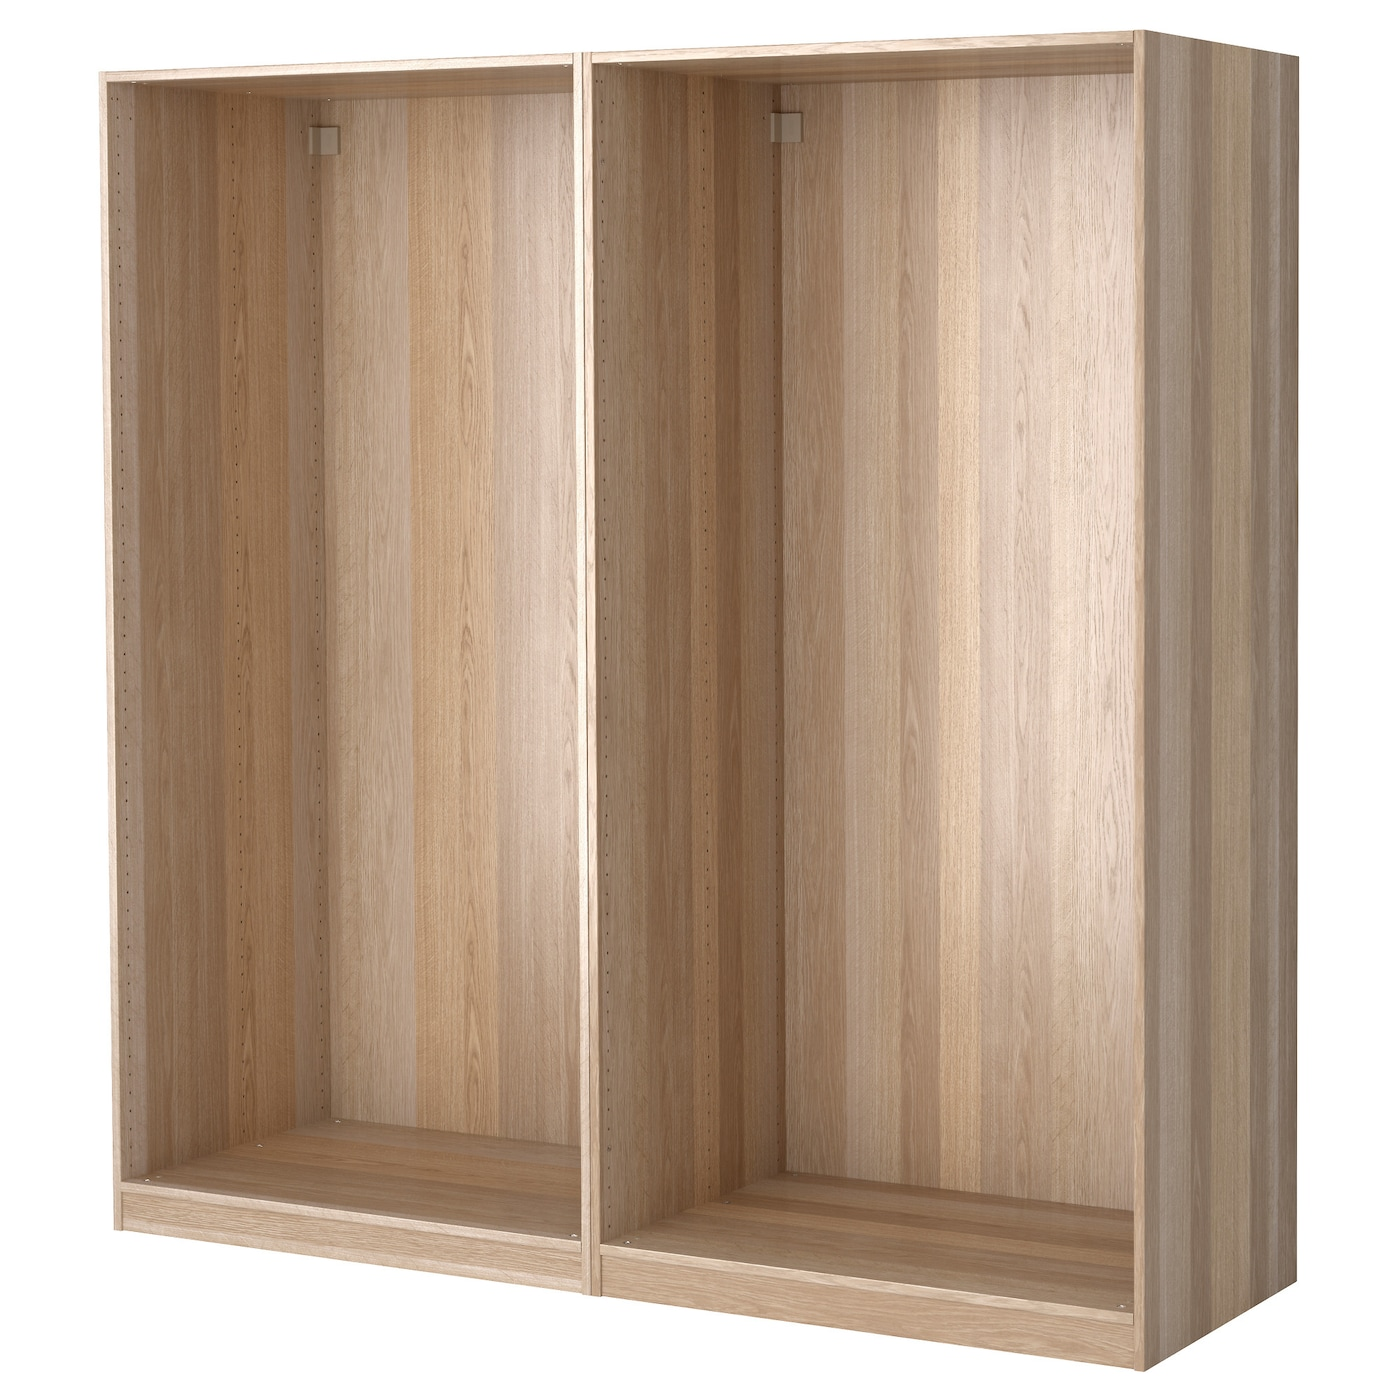 Pax 2 wardrobe frames white stained oak 200x58x201 cm ikea - Placard porte coulissante ikea ...